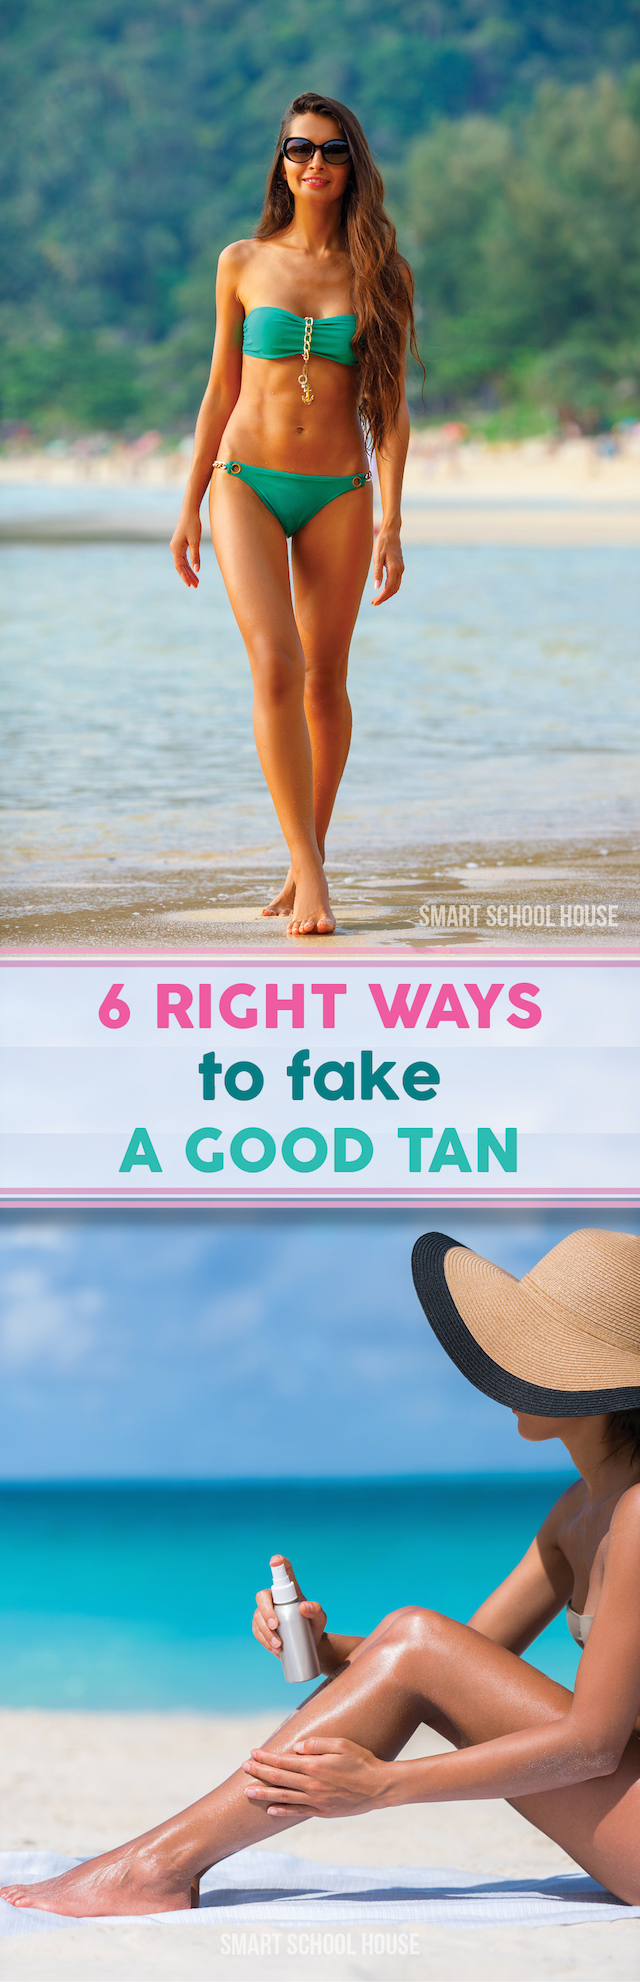 Self Tanning THE WRONG way - saving this!